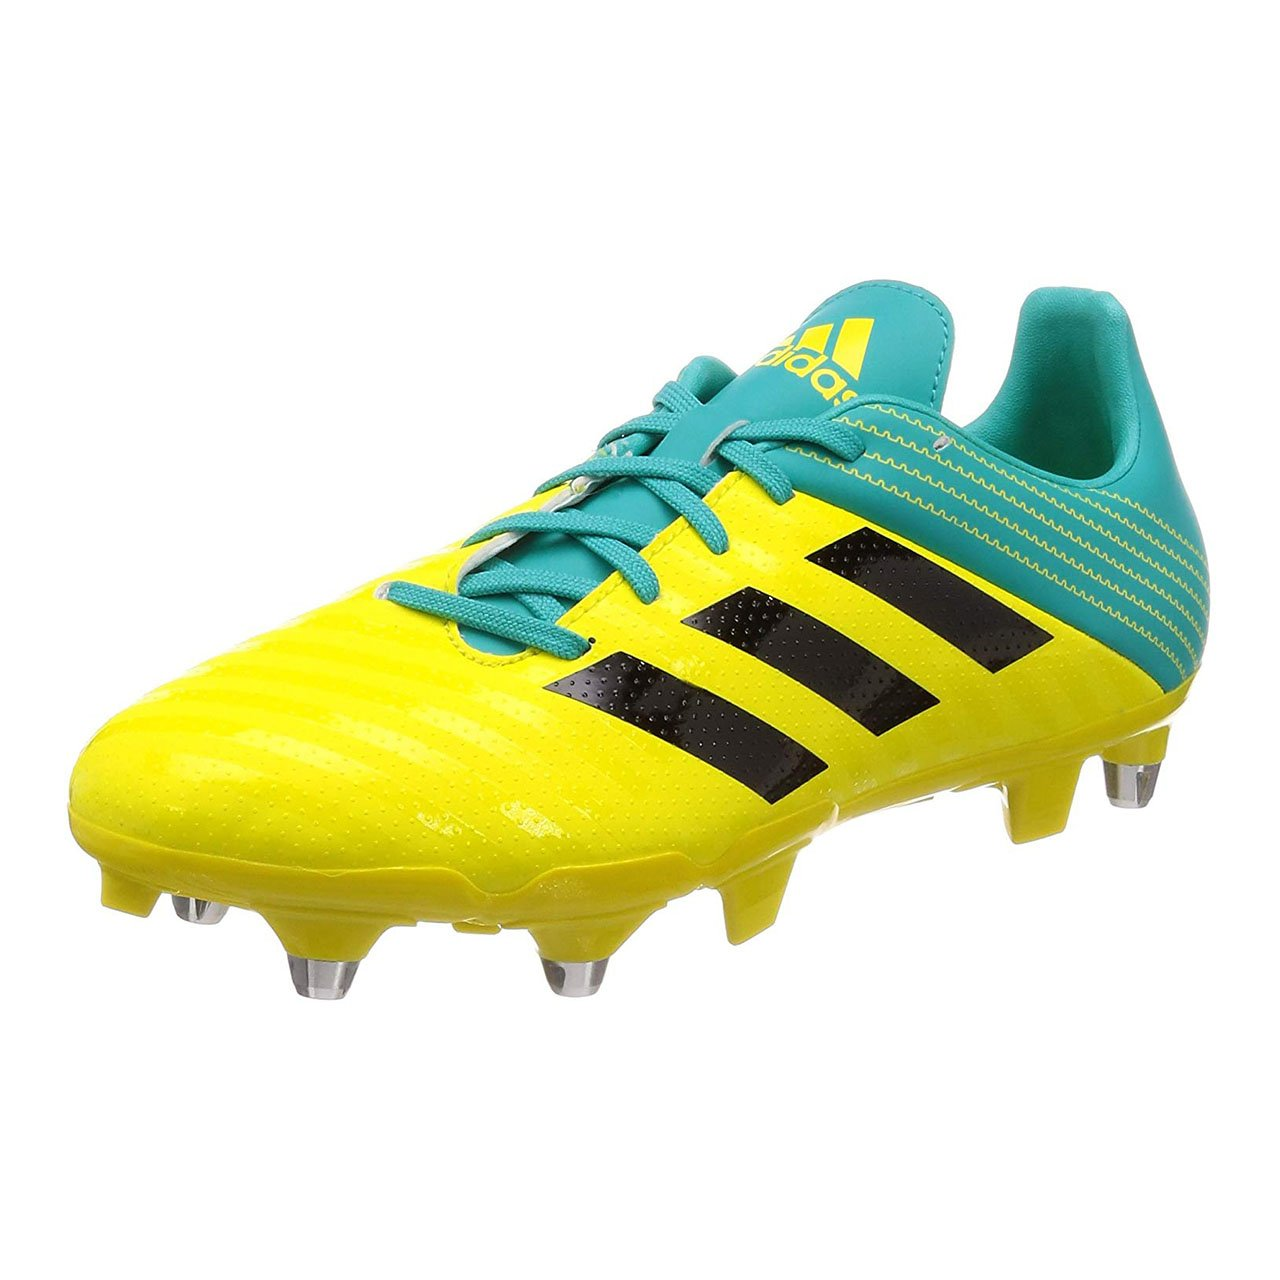 Adidas Malice SG Boots Adults by adidas